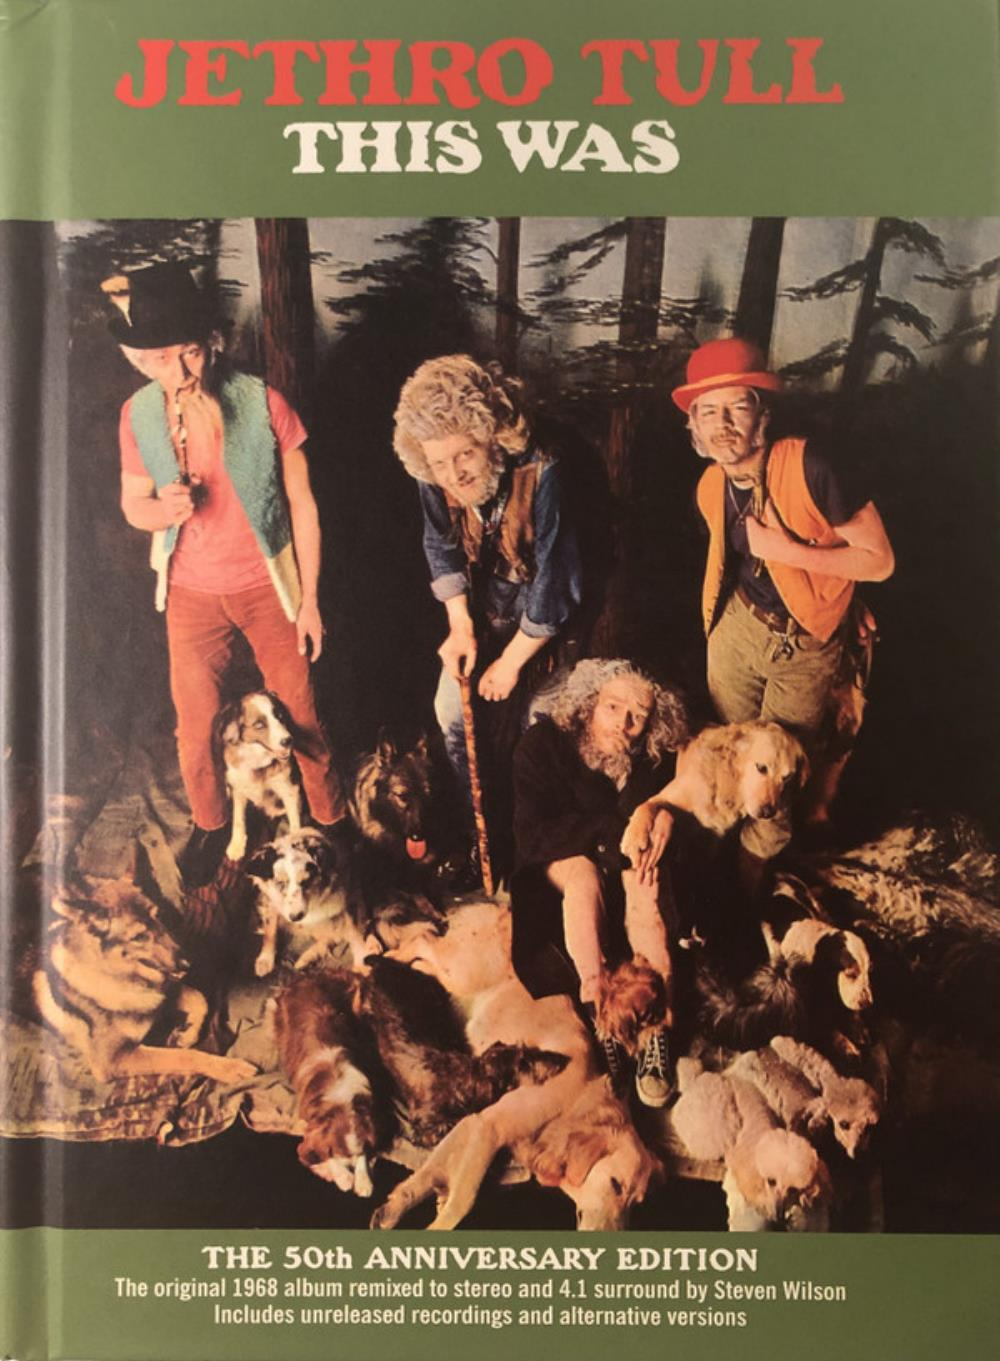 Jethro Tull This Was (50 Anniversary Edition) album cover